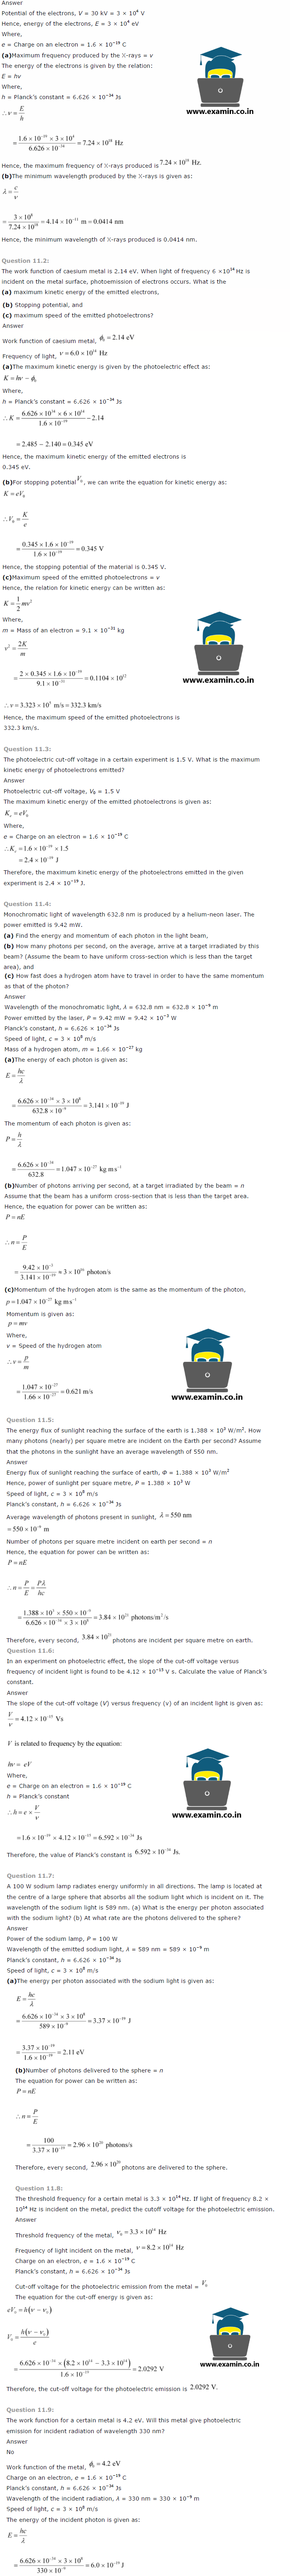 NCERT Solutions Class 12 Physics Chapter 11 – Download PDF